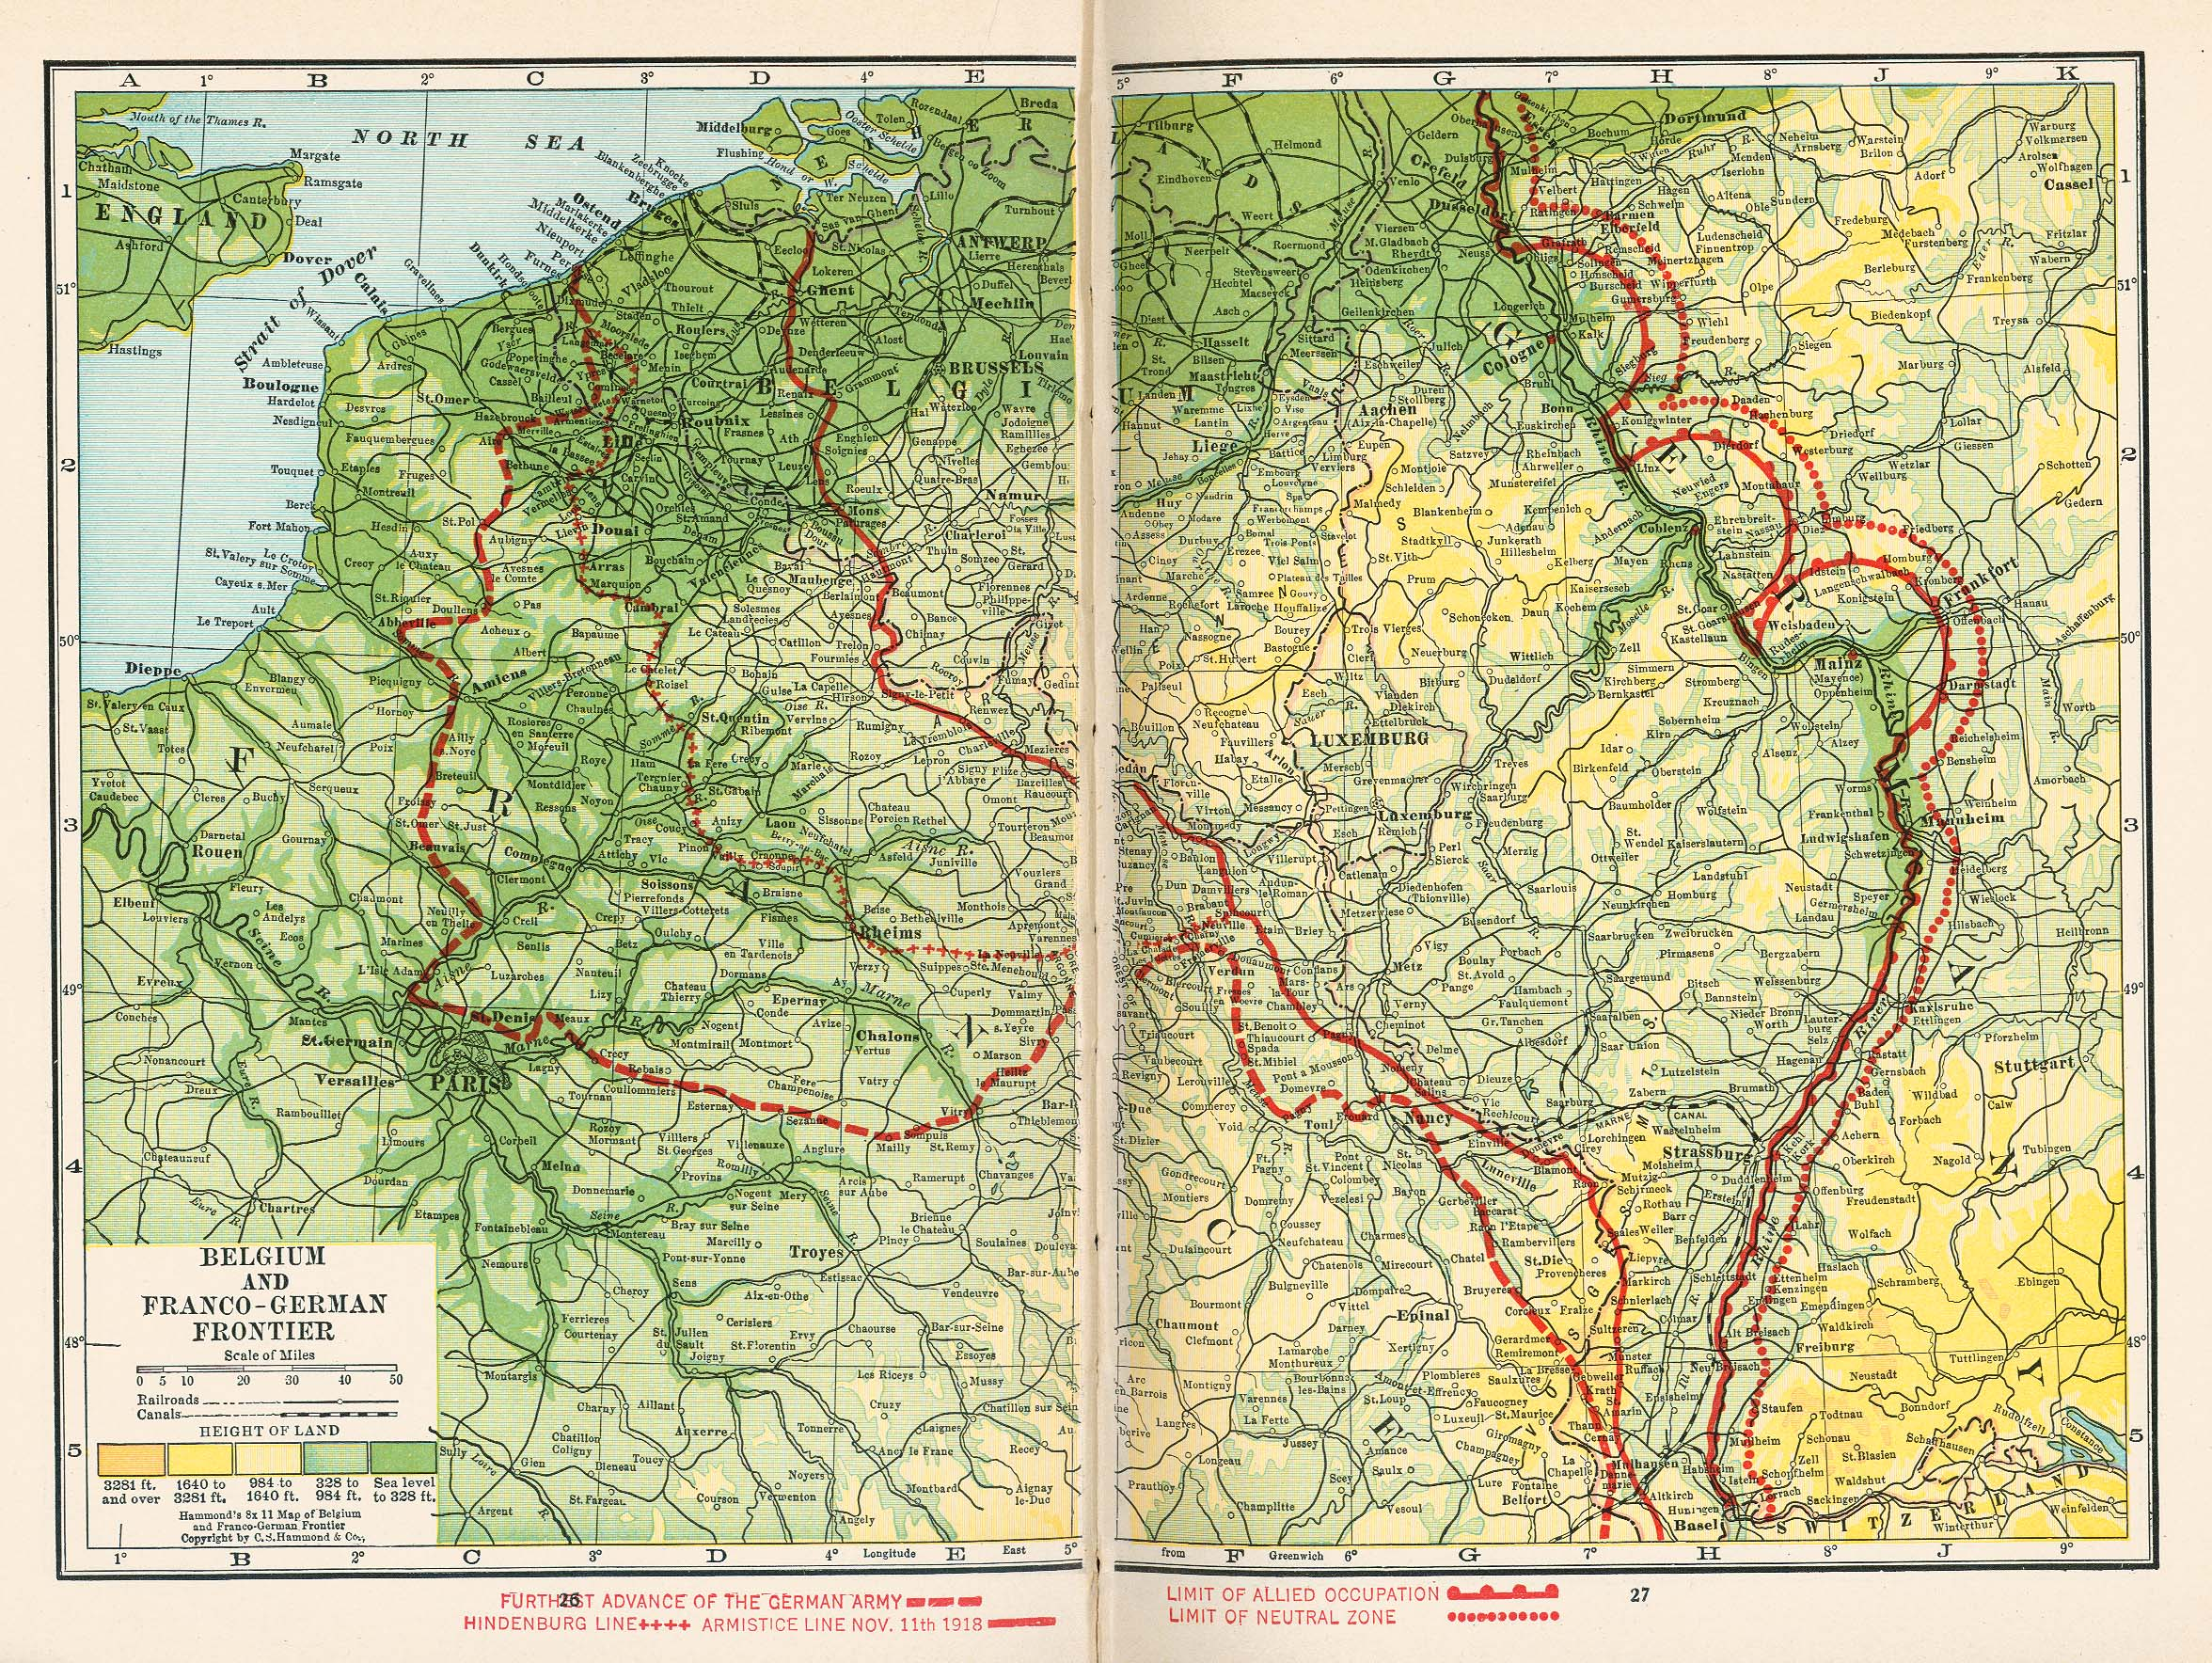 Europe Historical Maps   Perry Casta    eda Map Collection   UT Library     Belgium and Franco German Frontier